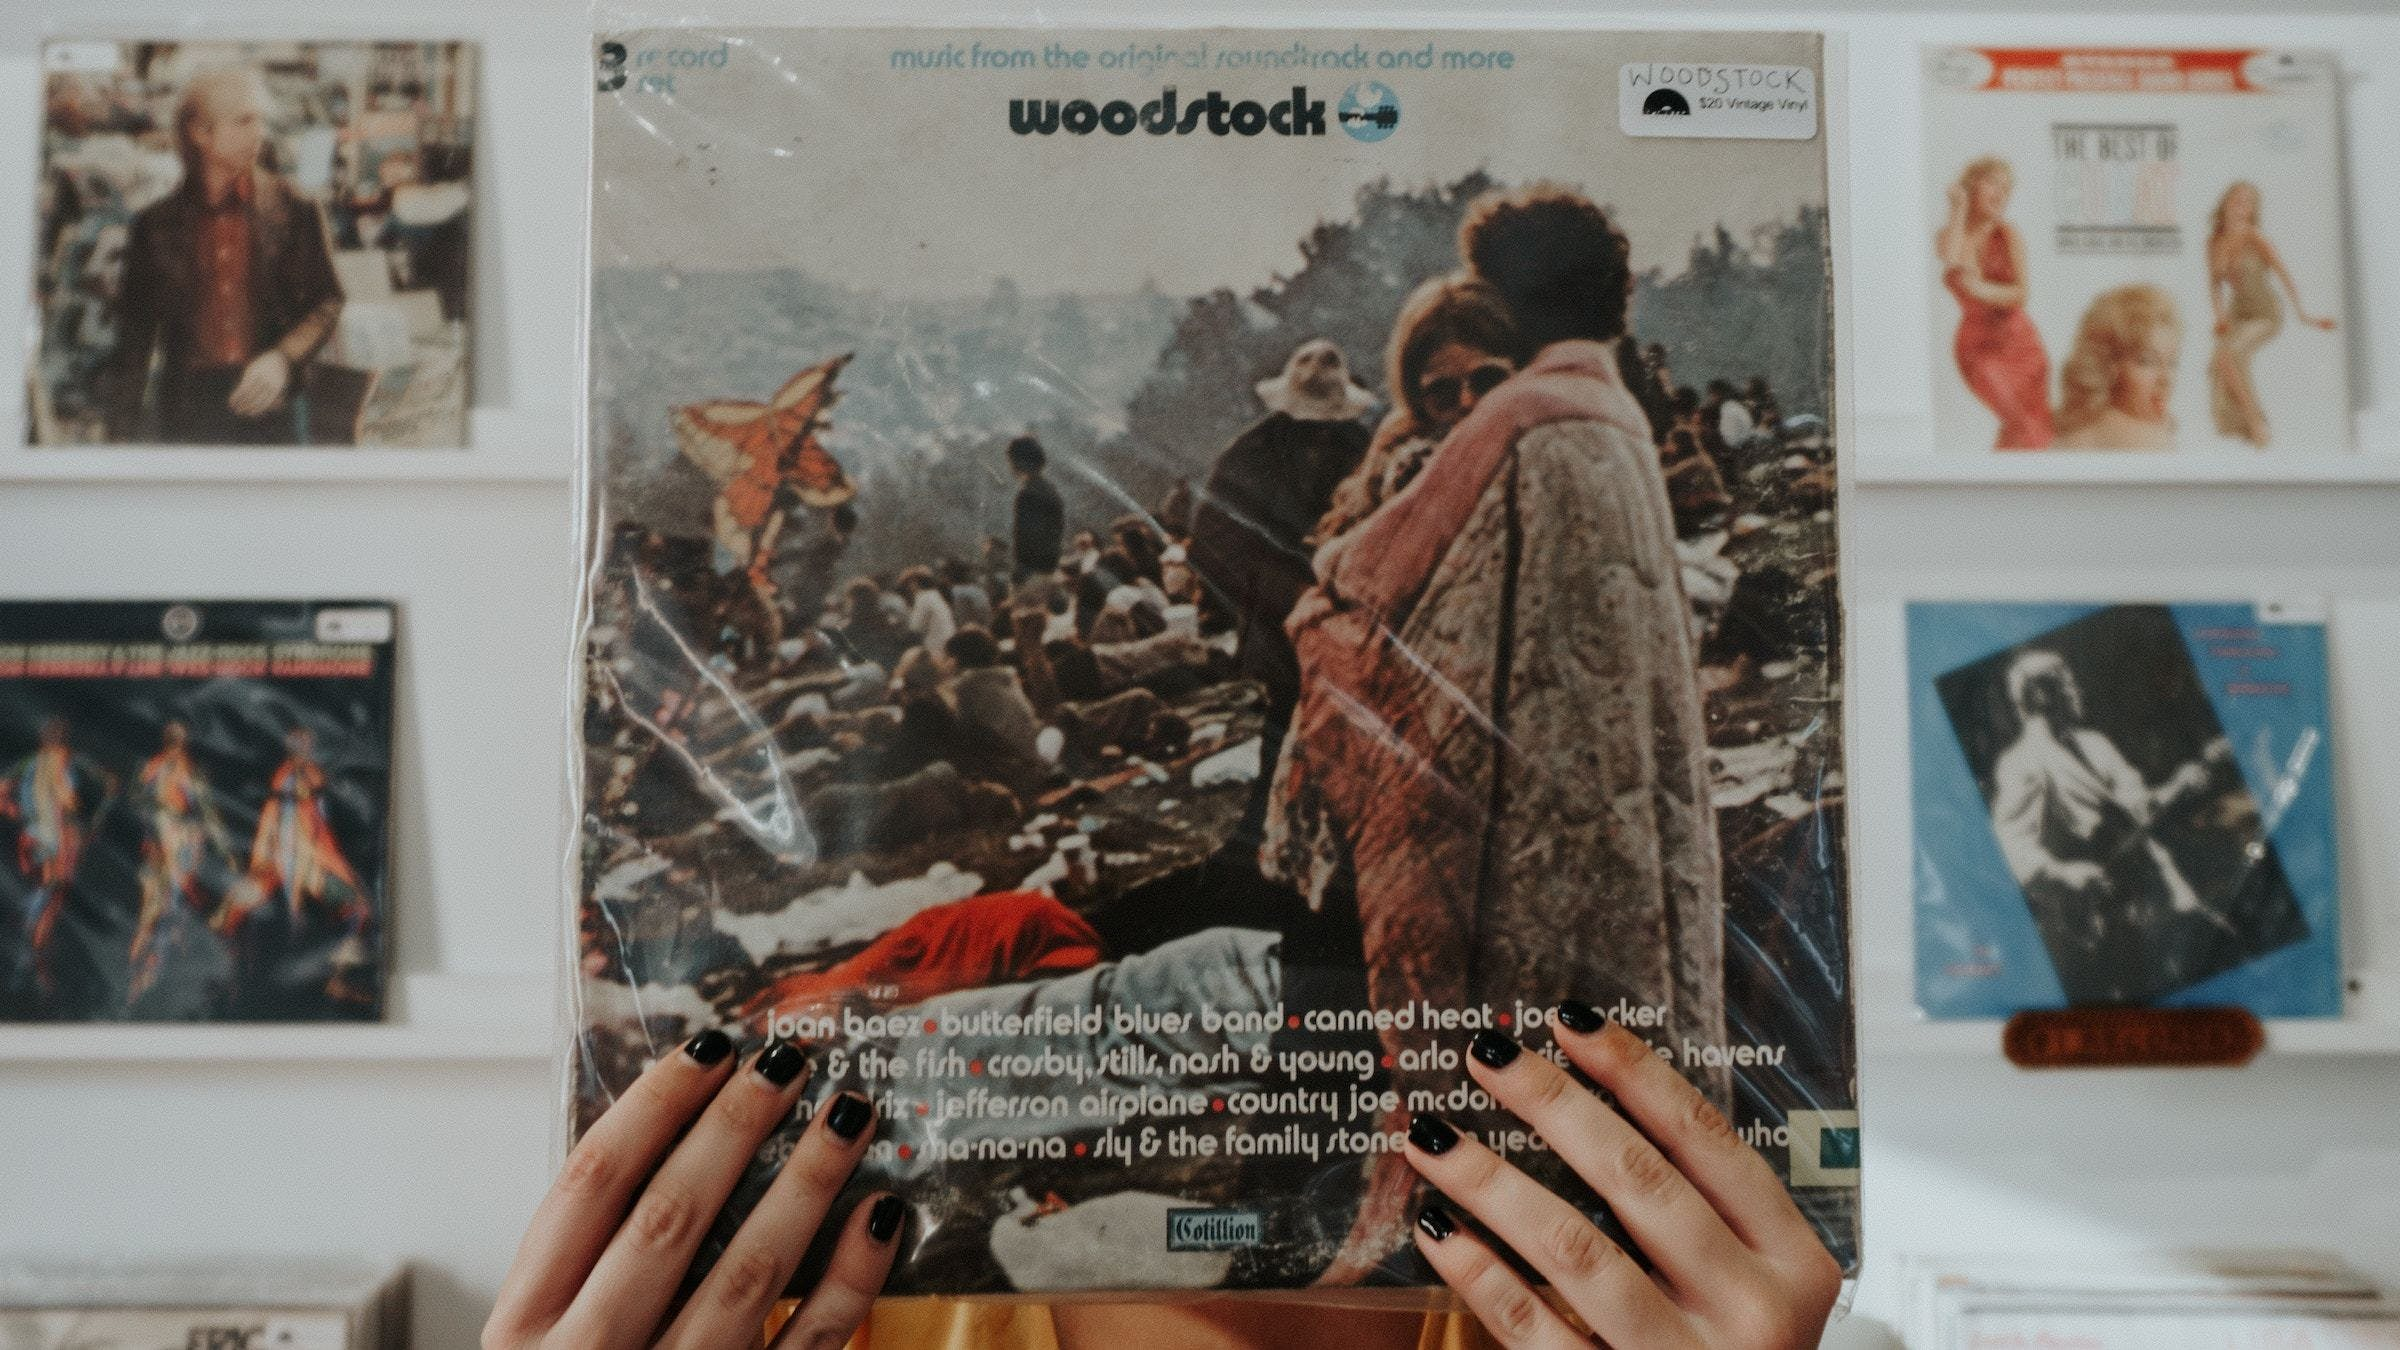 Woodstock 2019 Confirmed For Festival's 50th Anniversary